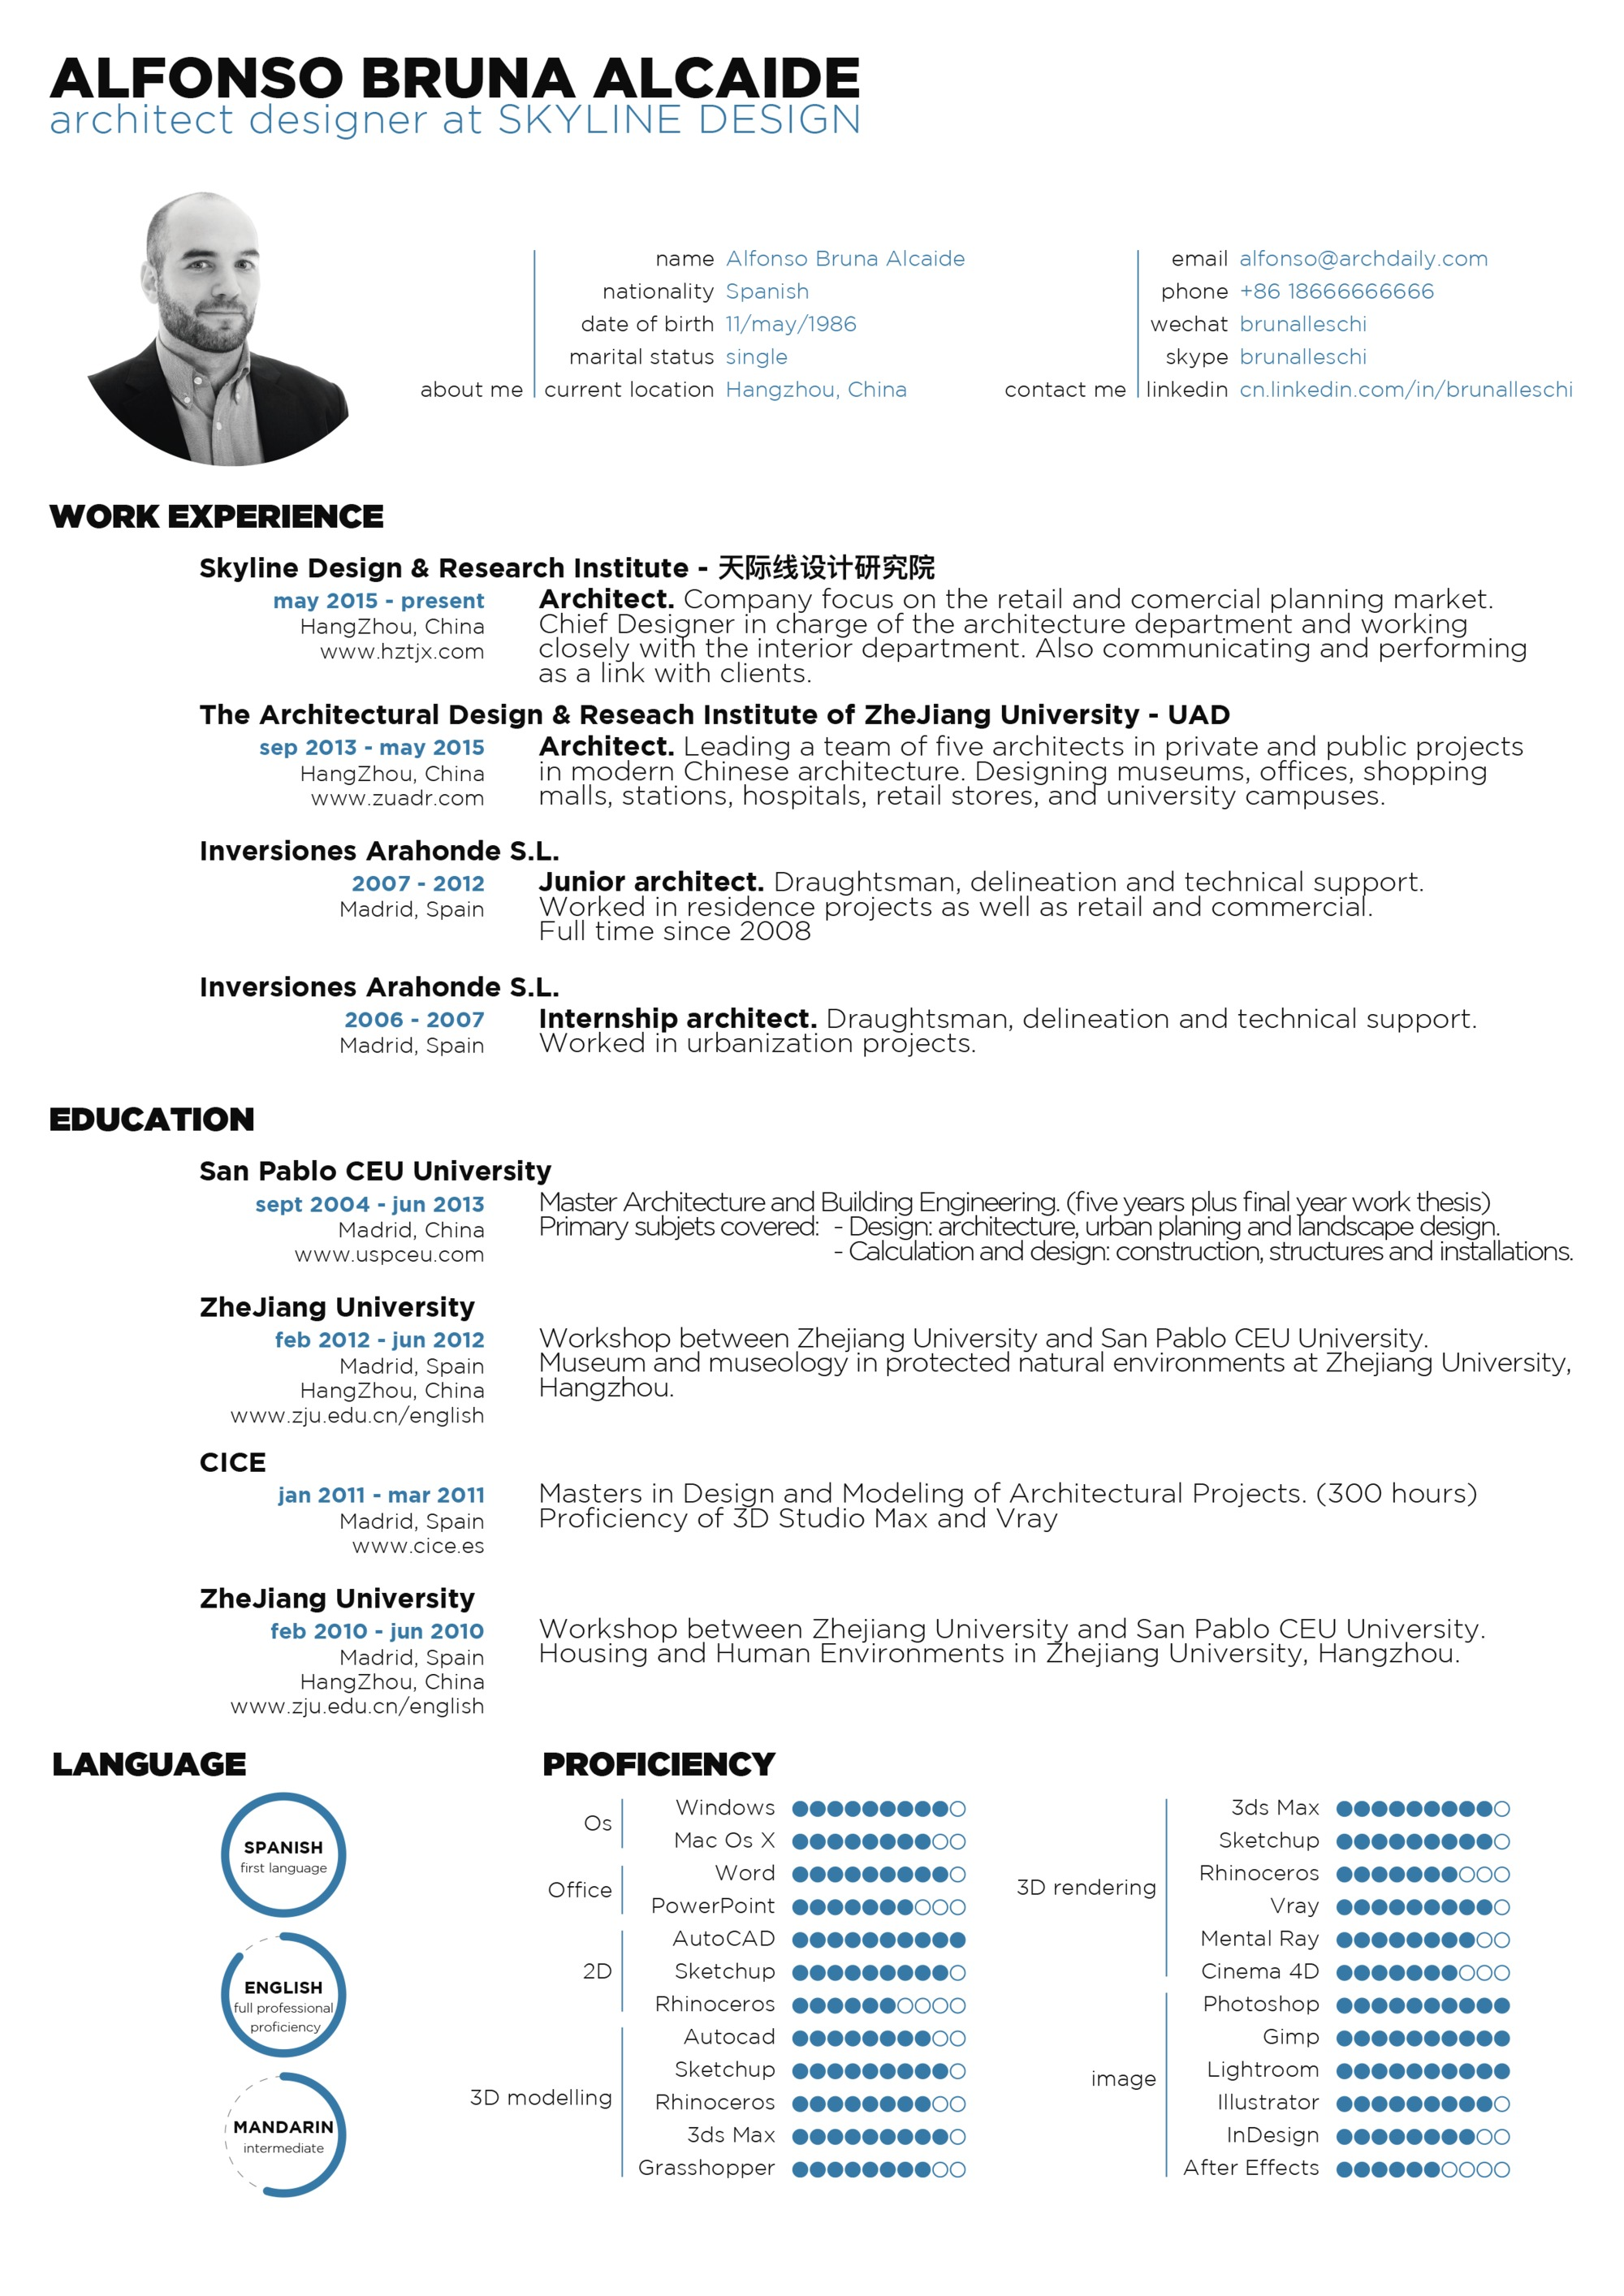 submitted by alfonso bruna - Example Of An Cv